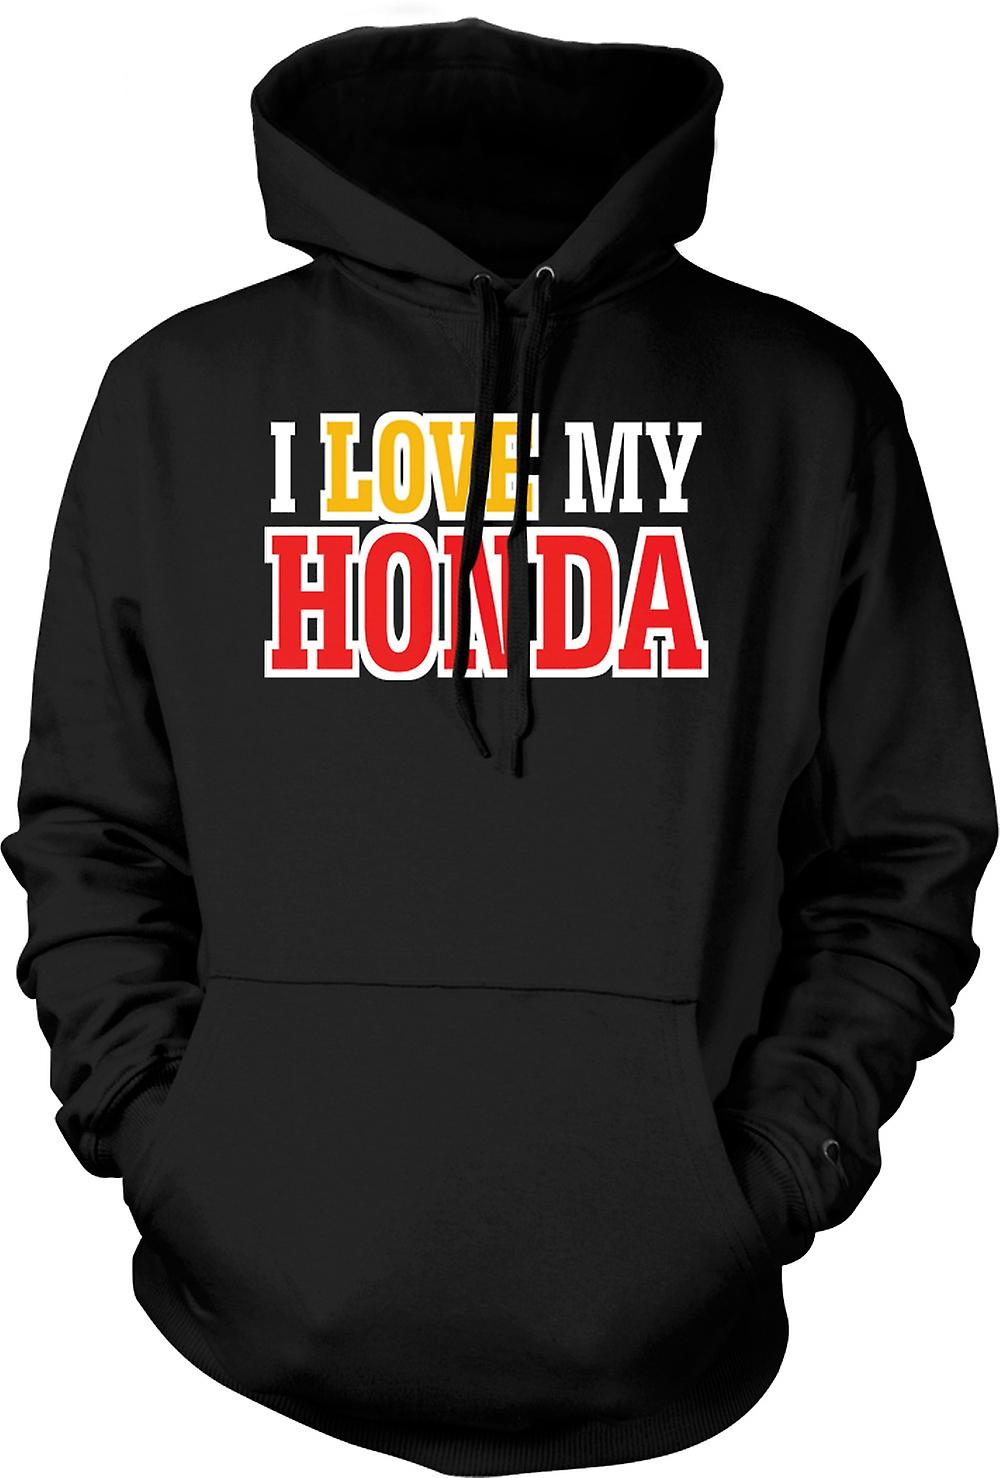 Kids Hoodie - I Love My Honda - Car Enthusiast